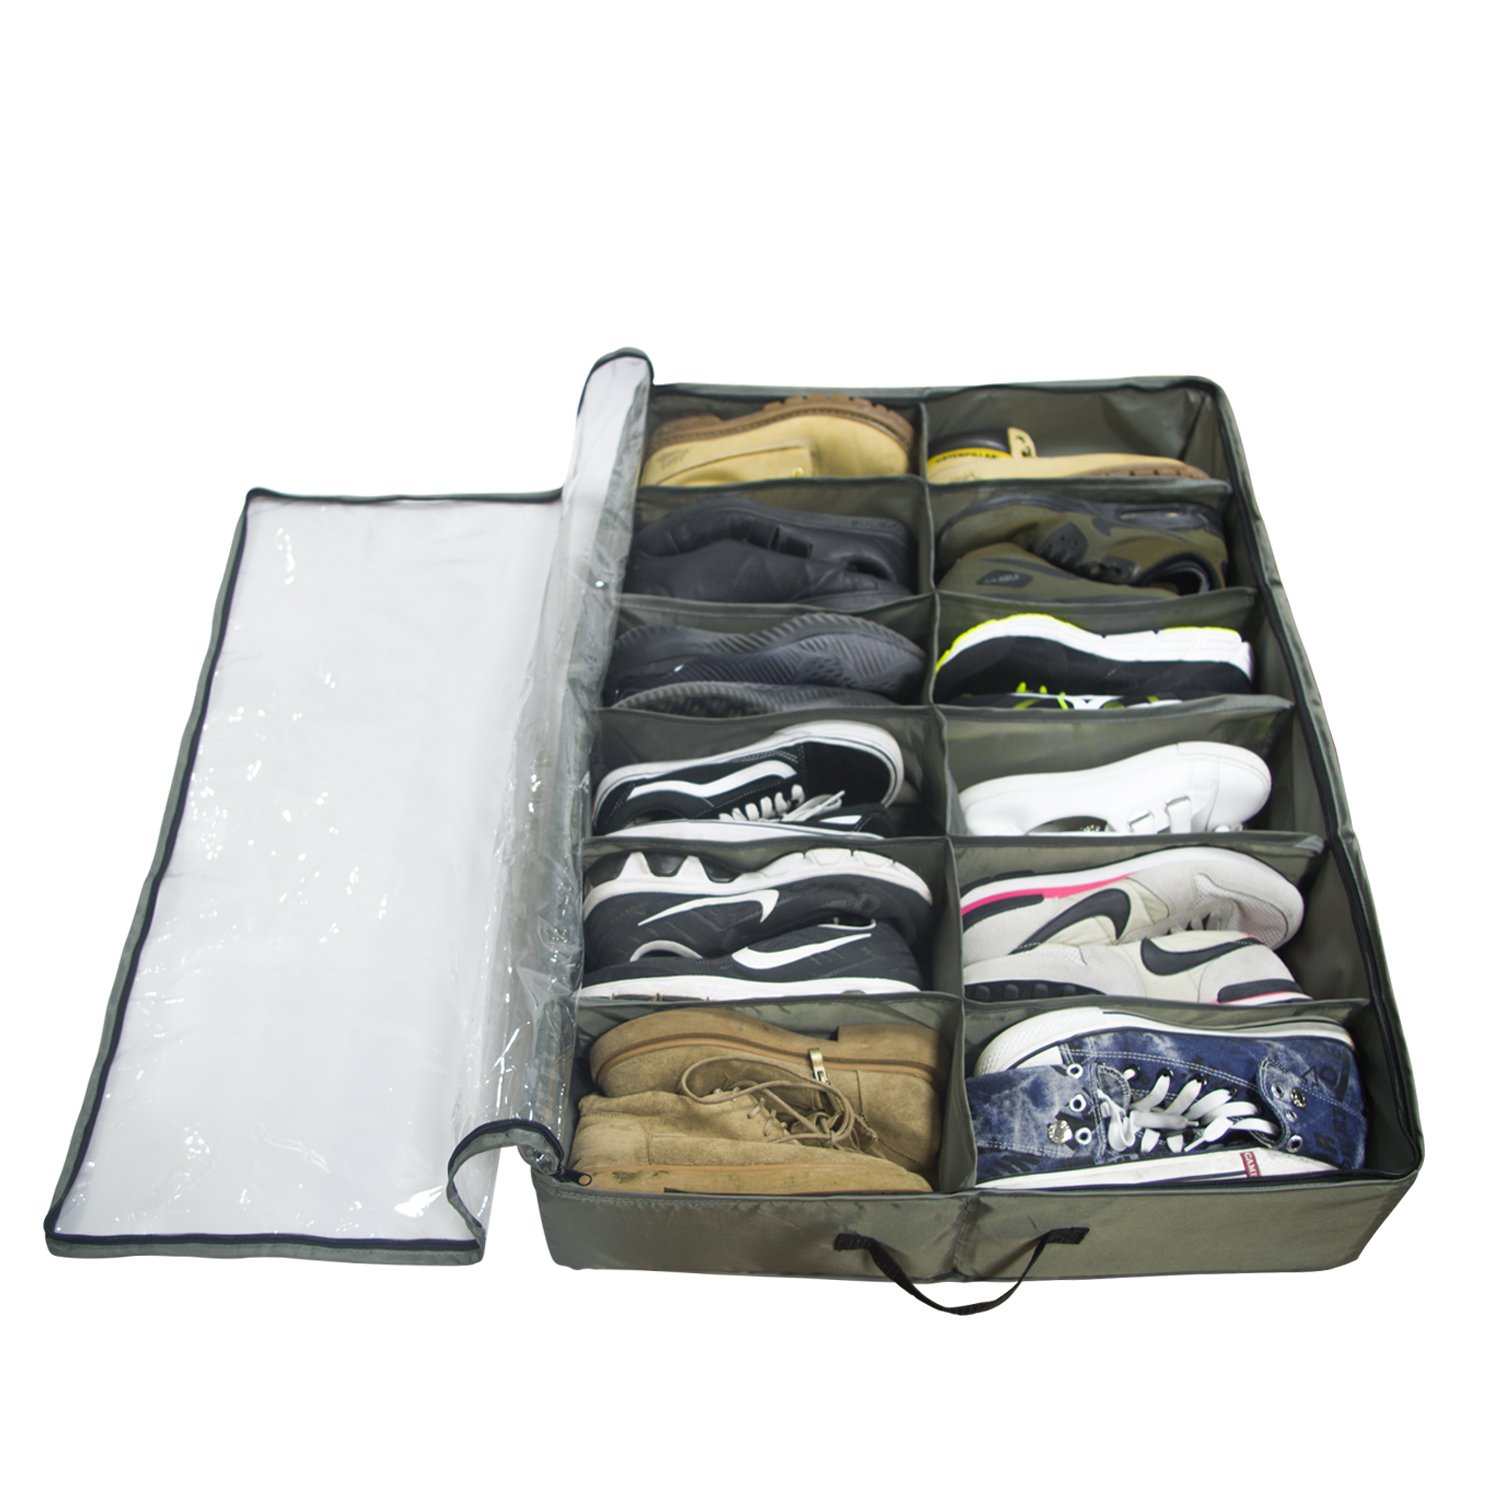 ACMETOP Built-in Structure Under Bed Shoe Storage, Space Saver Organizer, Fit Men's Size 12 Sneaker (Max Size 13) & Women's 4'' High-Heeled Shoes (12 Cell) by ACMETOP